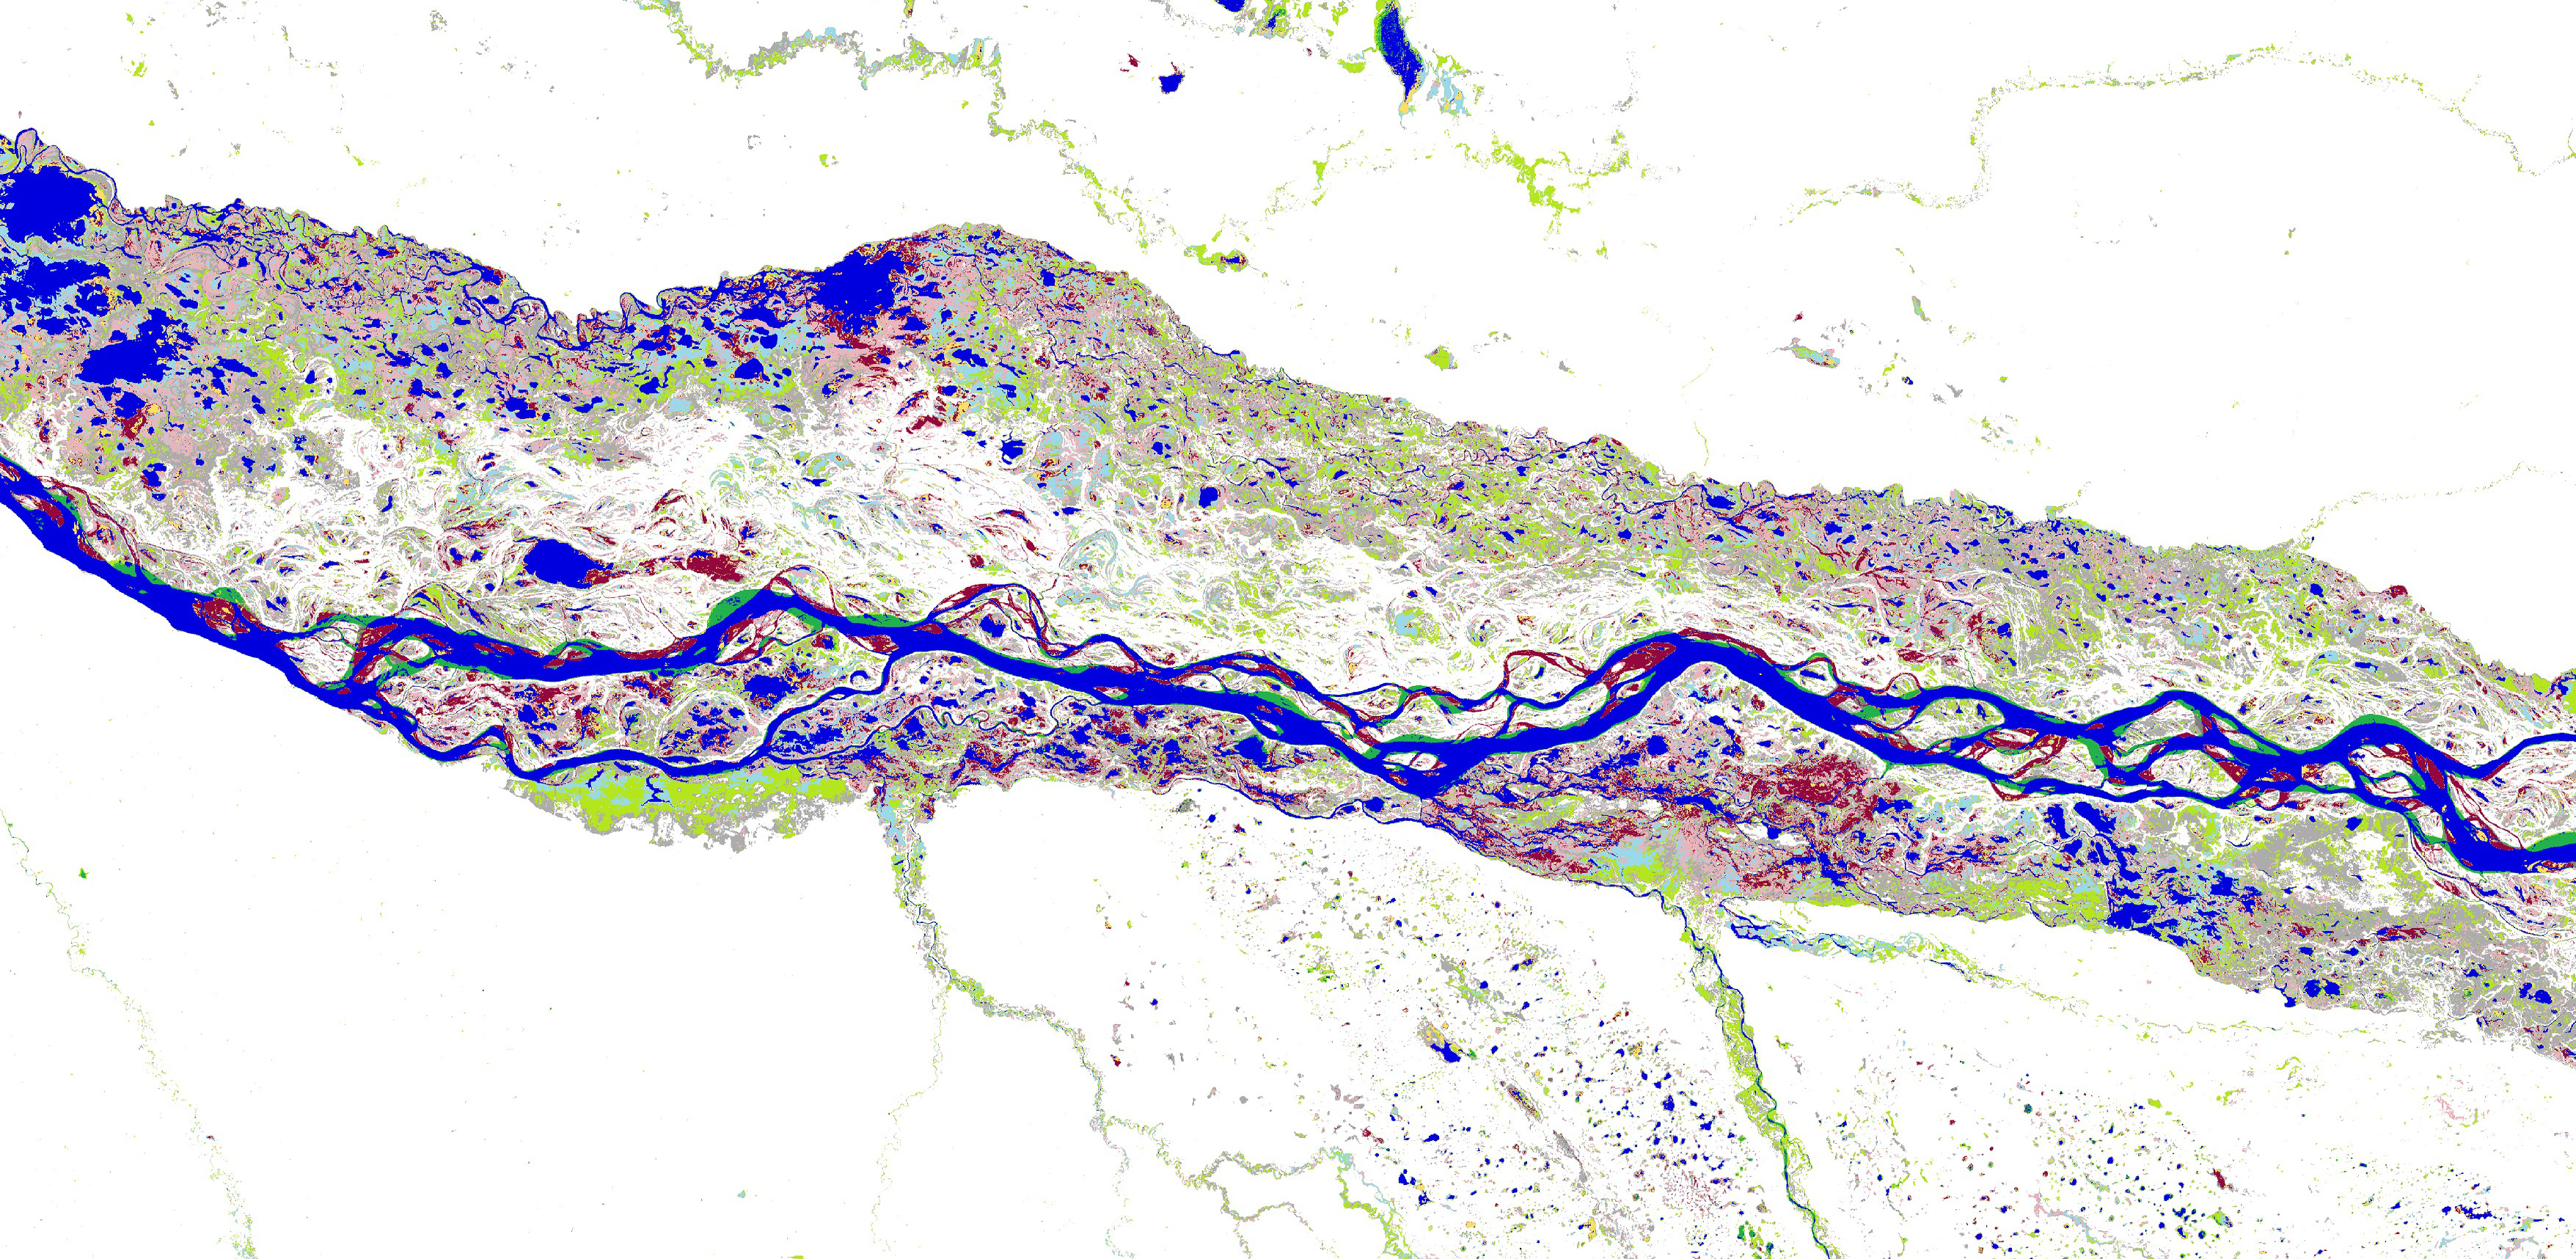 This map of the Paraná River in North-Eastern Argentina and shows how rivers meander and move, how floodplains flood intermittently, and how new areas of permanent and seasonal water are being created and lost through time. (Image: © EC-Joint Research Centre / Google, 2016)